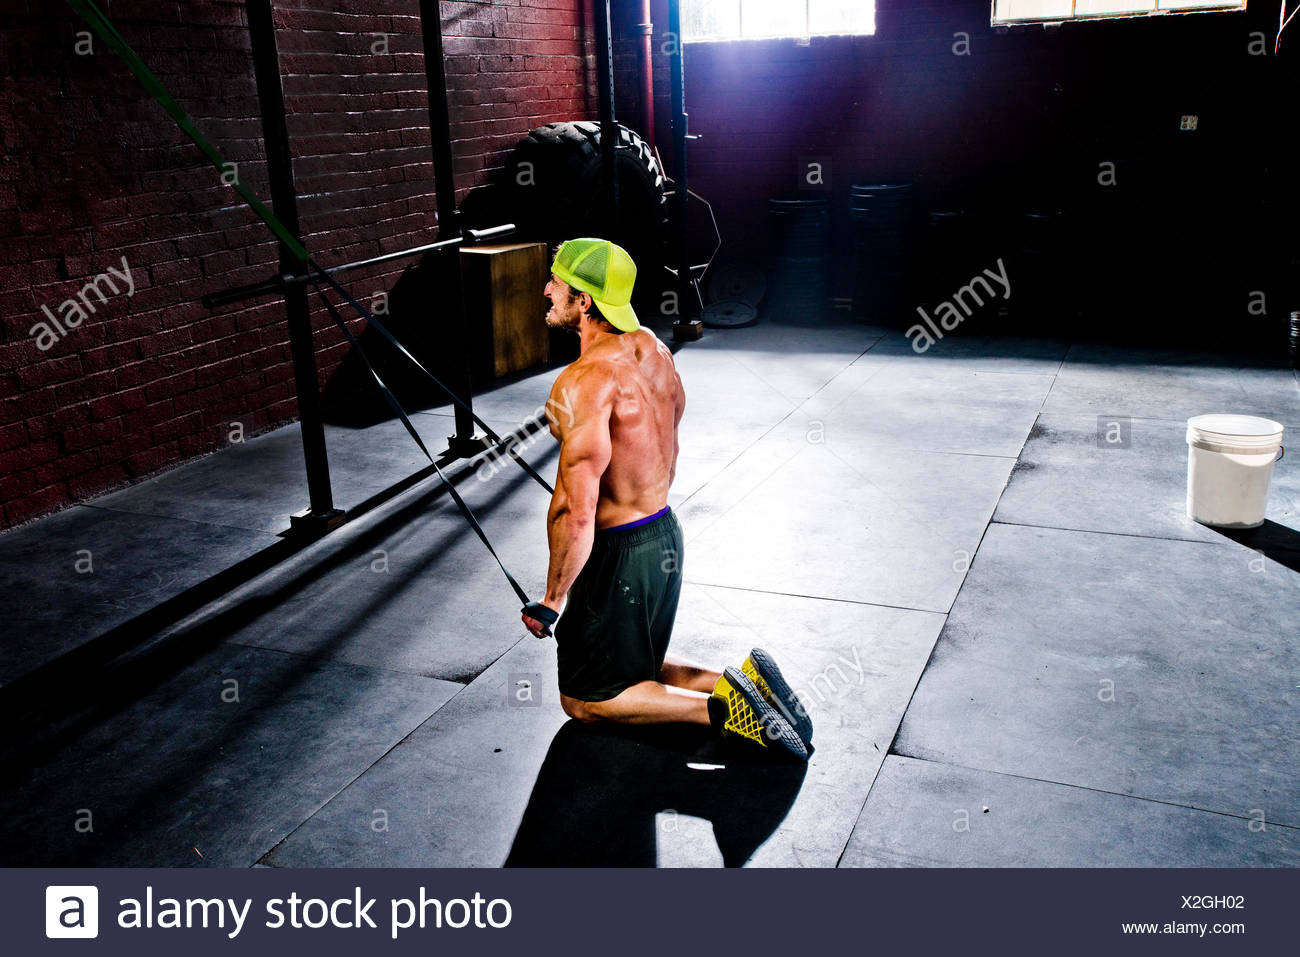 A crossfit athlete working out with resistance bands. Stock Photo